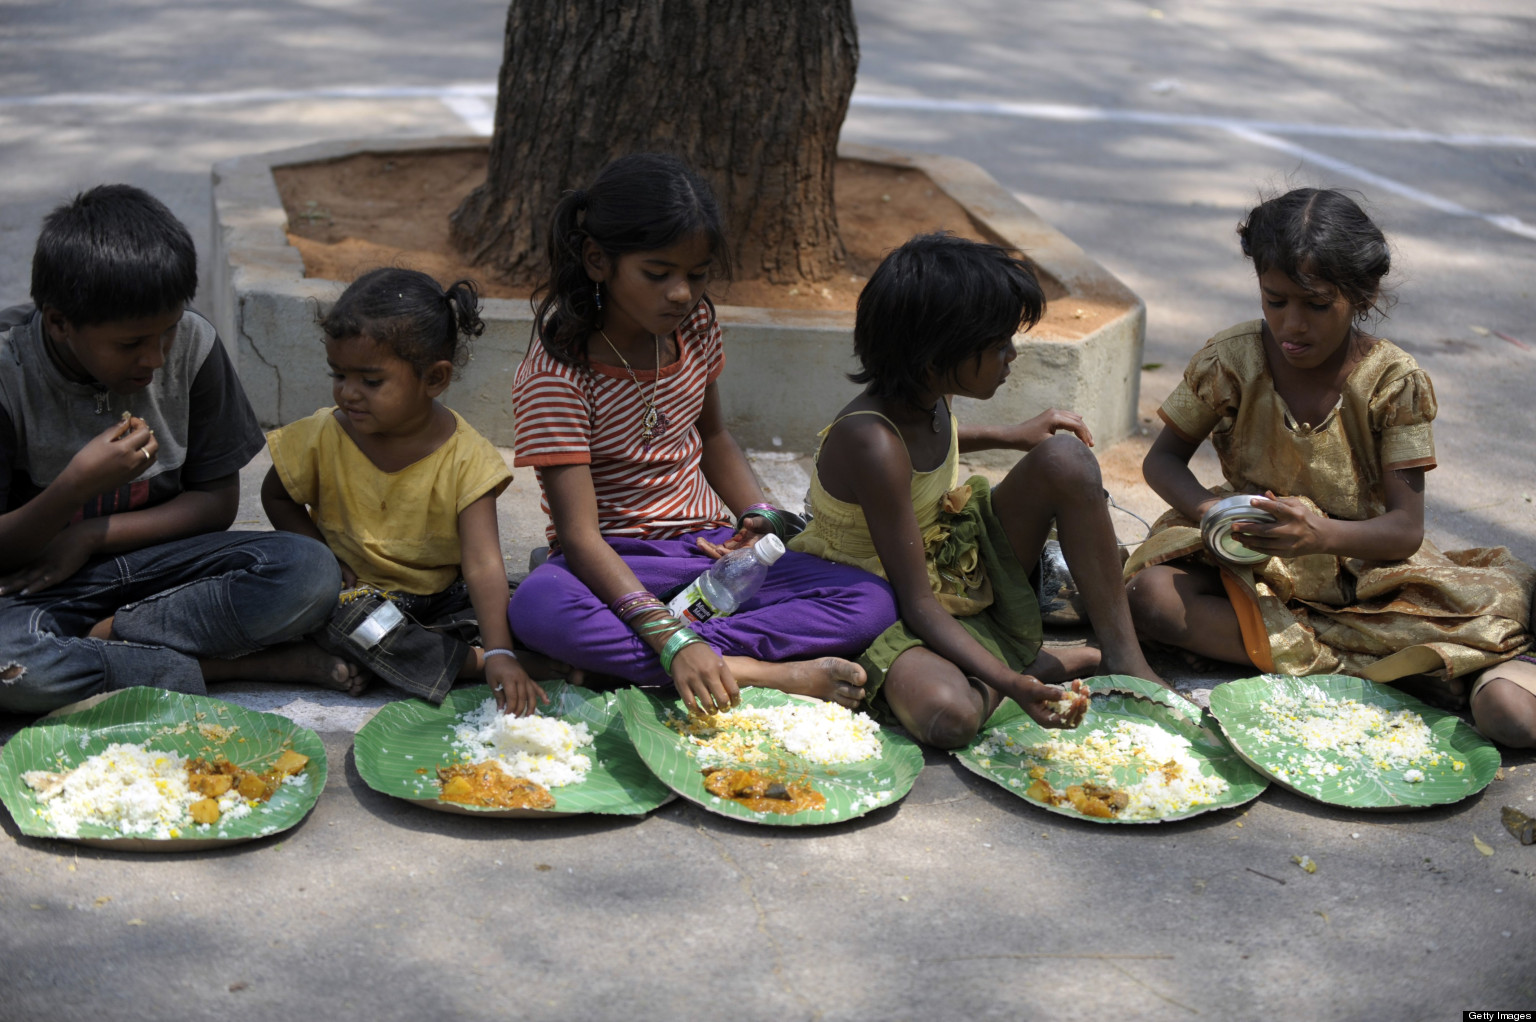 hunger malnutrition and poverty The times have changed poverty is less prominent in the news president johnson's great society plan is a thing of the past the war on poverty that brought into being the elementary and secondary education act has long since evolved.